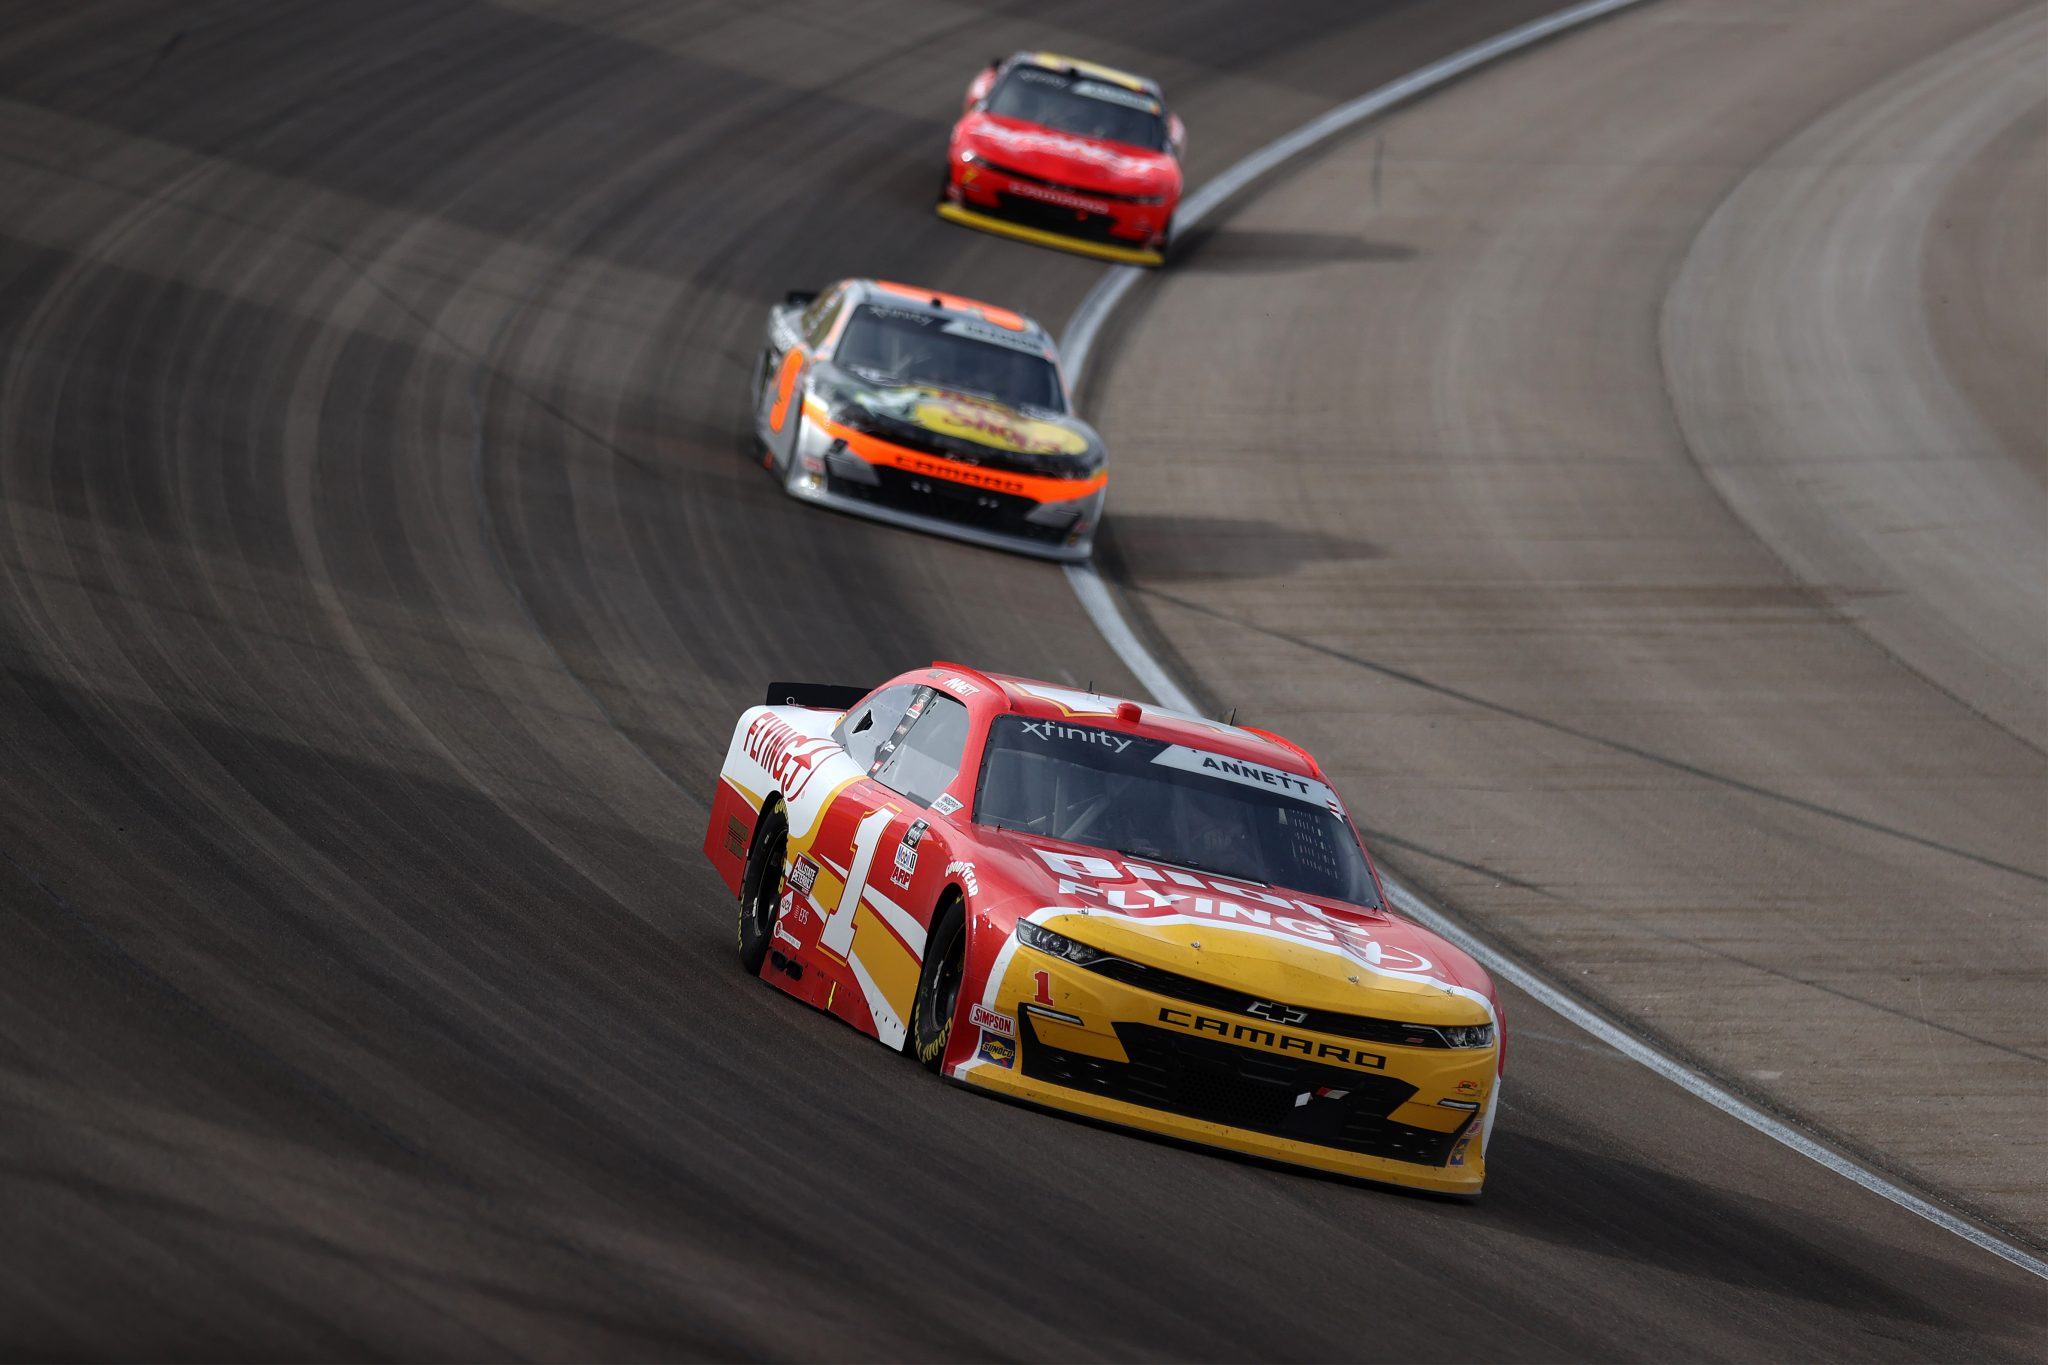 LAS VEGAS, NEVADA - MARCH 06: Michael Annett, driver of the #1 Pilot Flying J Chevrolet, leads the field during the NASCAR Xfinity Series Alsco Uniforms 300 at The Bullring at Las Vegas Motor Speedway on March 06, 2021 in Las Vegas, Nevada. (Photo by Abbie Parr/Getty Images) | Getty Images